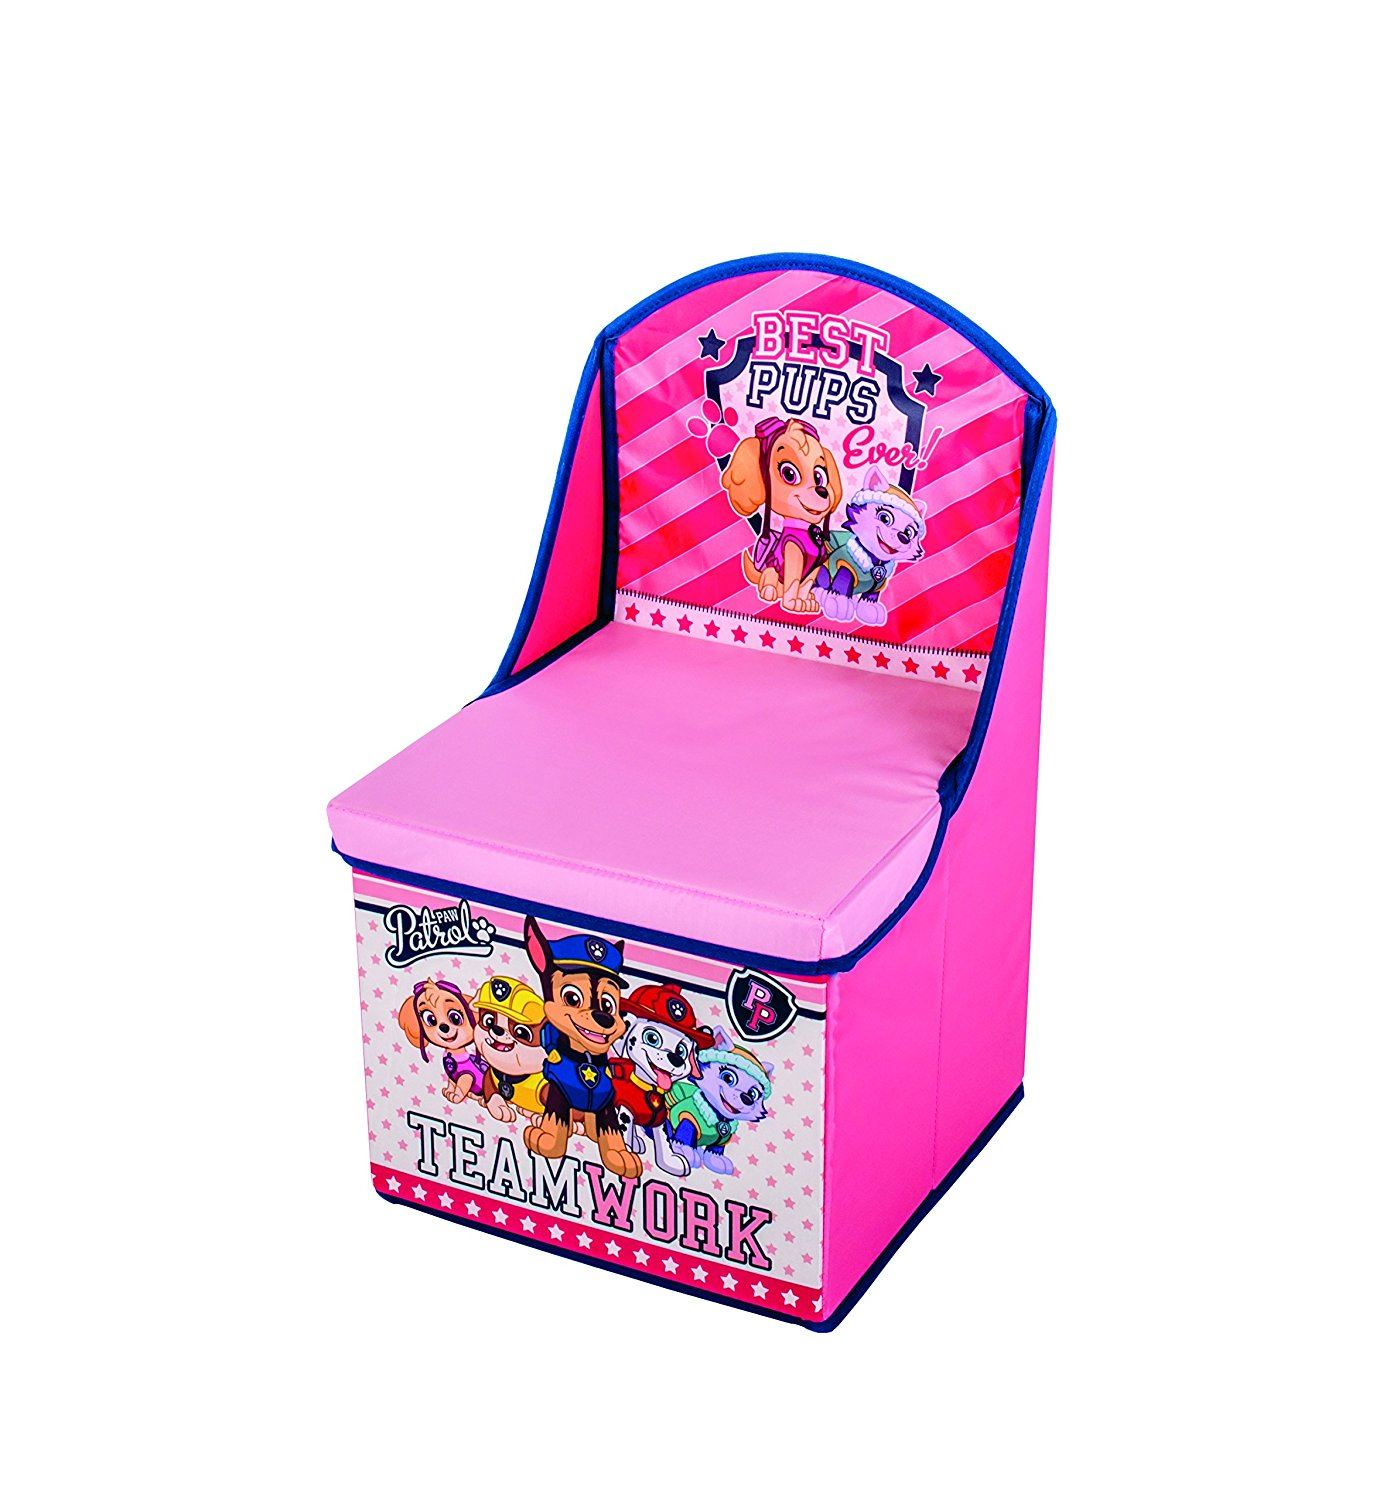 children s pop up chairs reclining rocking chair with ottoman paw patrol toys foldable storage box chest